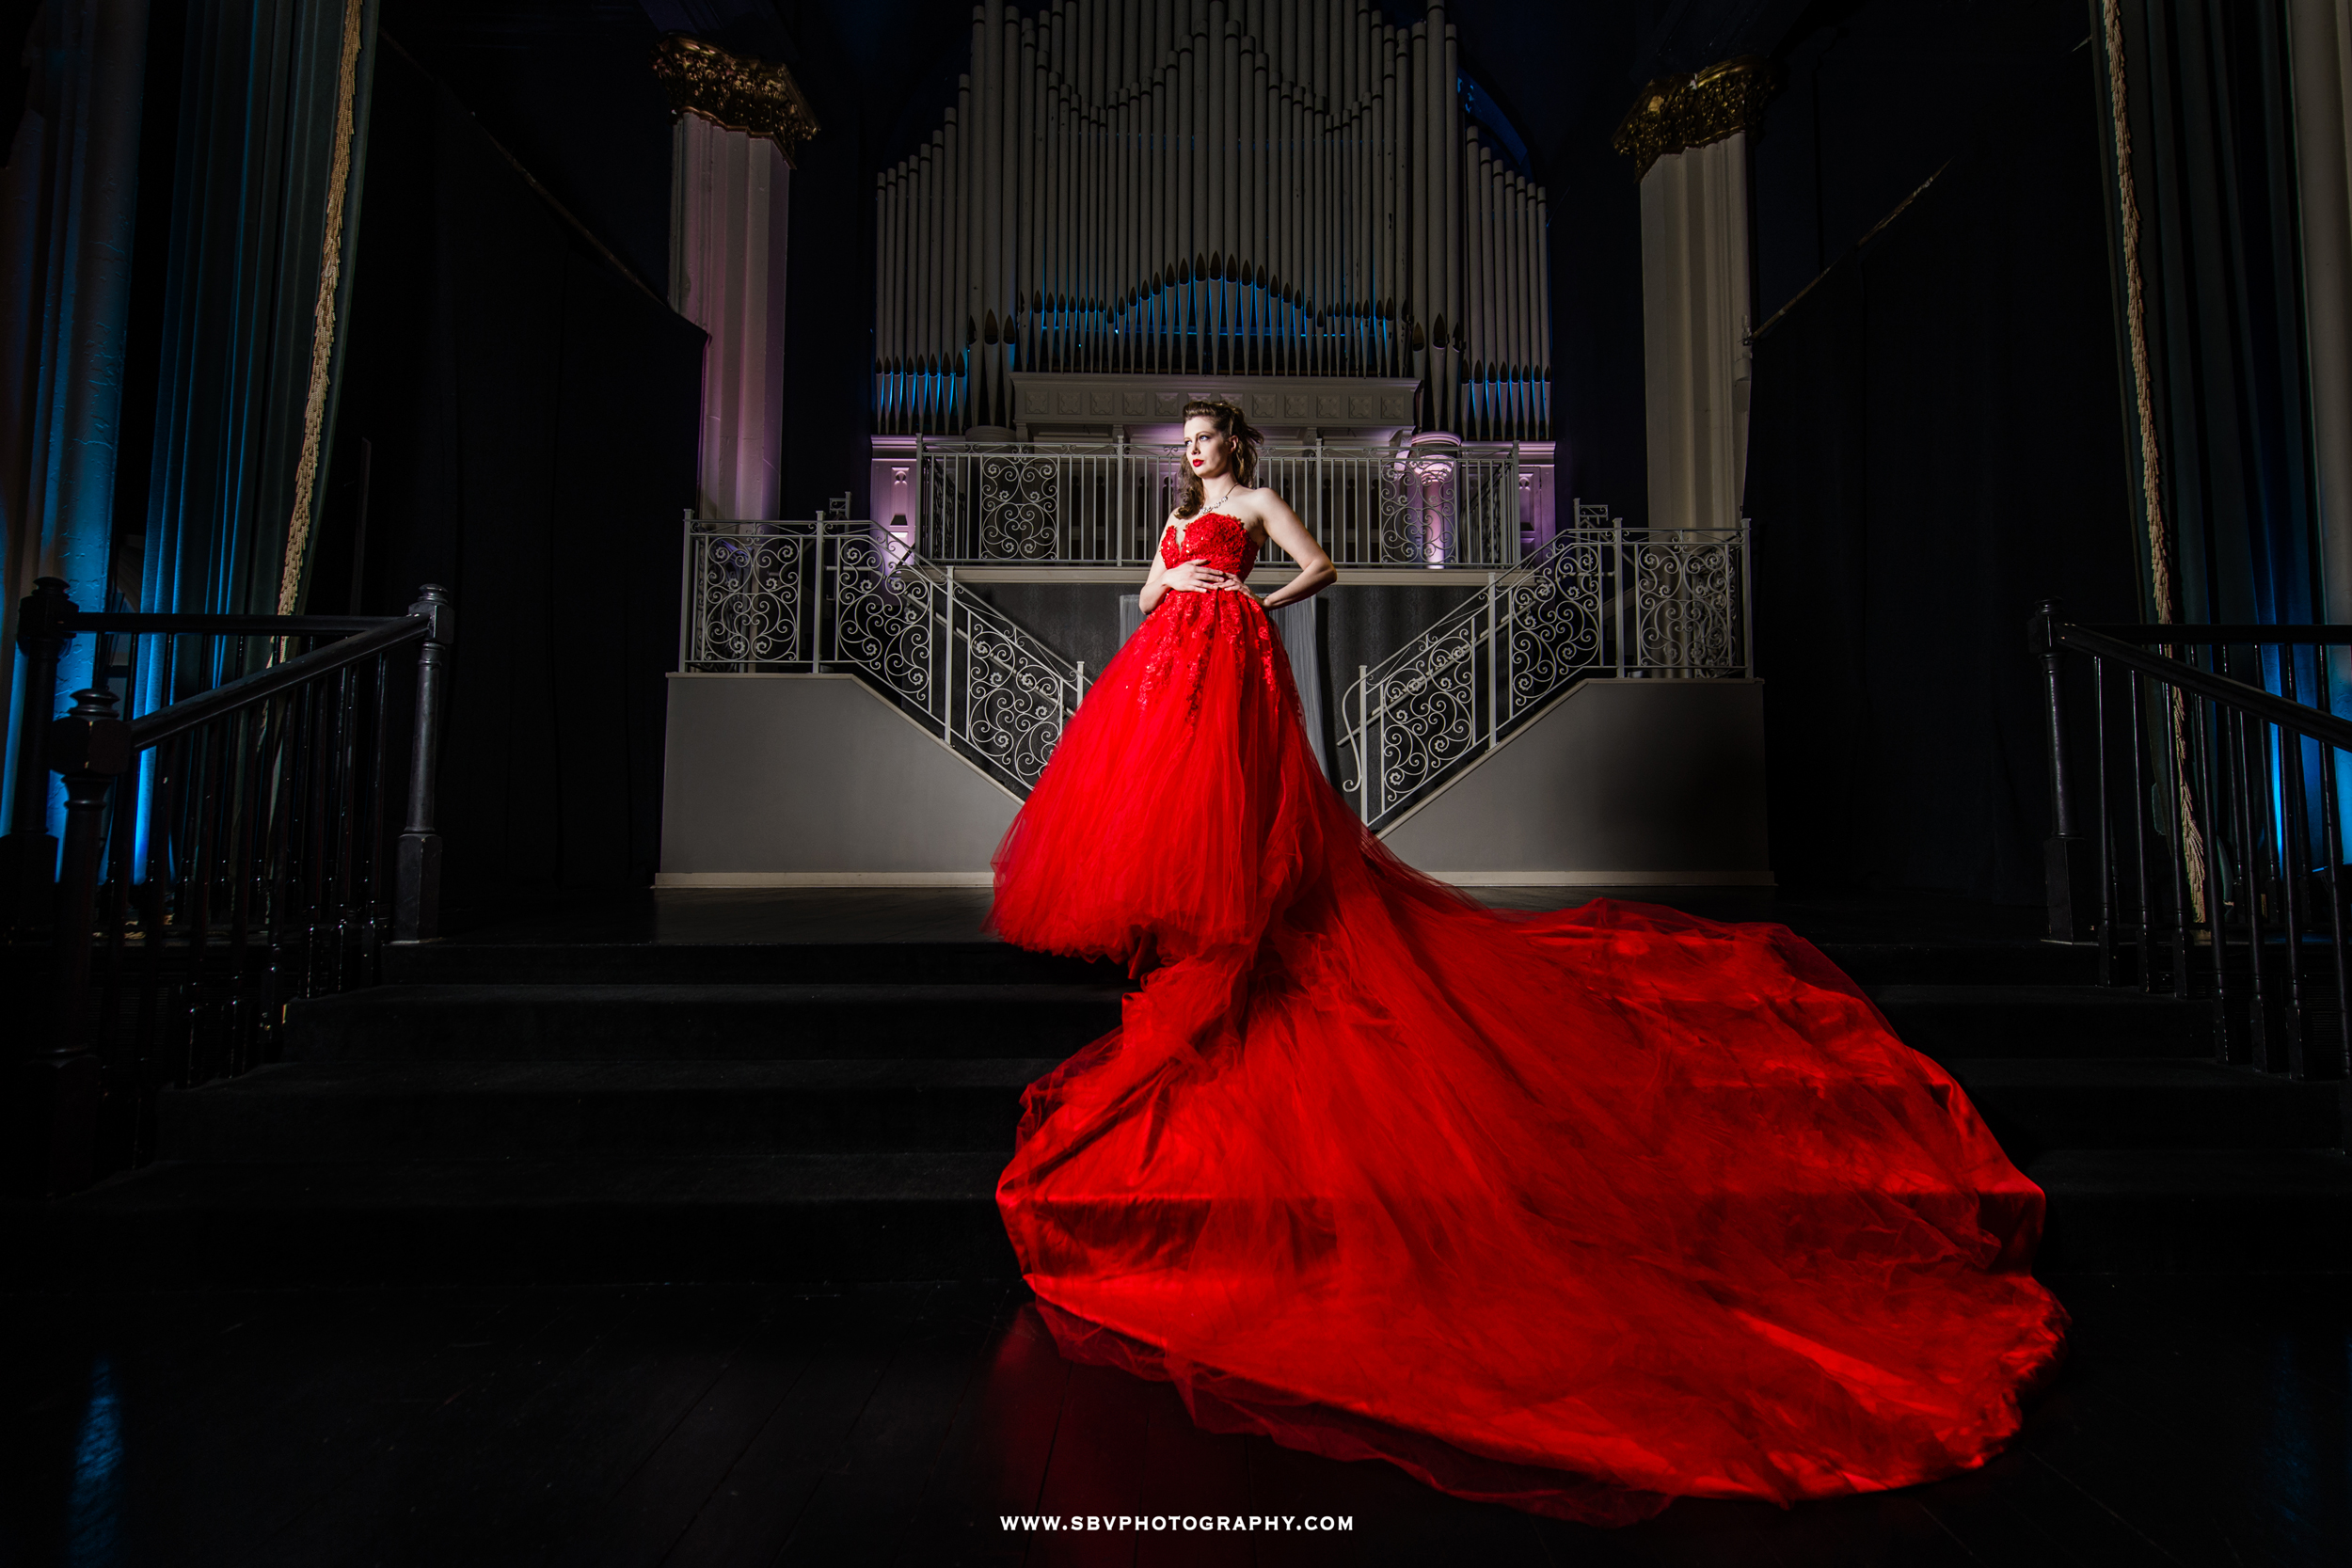 The Scarlett Obsession Gown with it's long train on the ballroom stage.